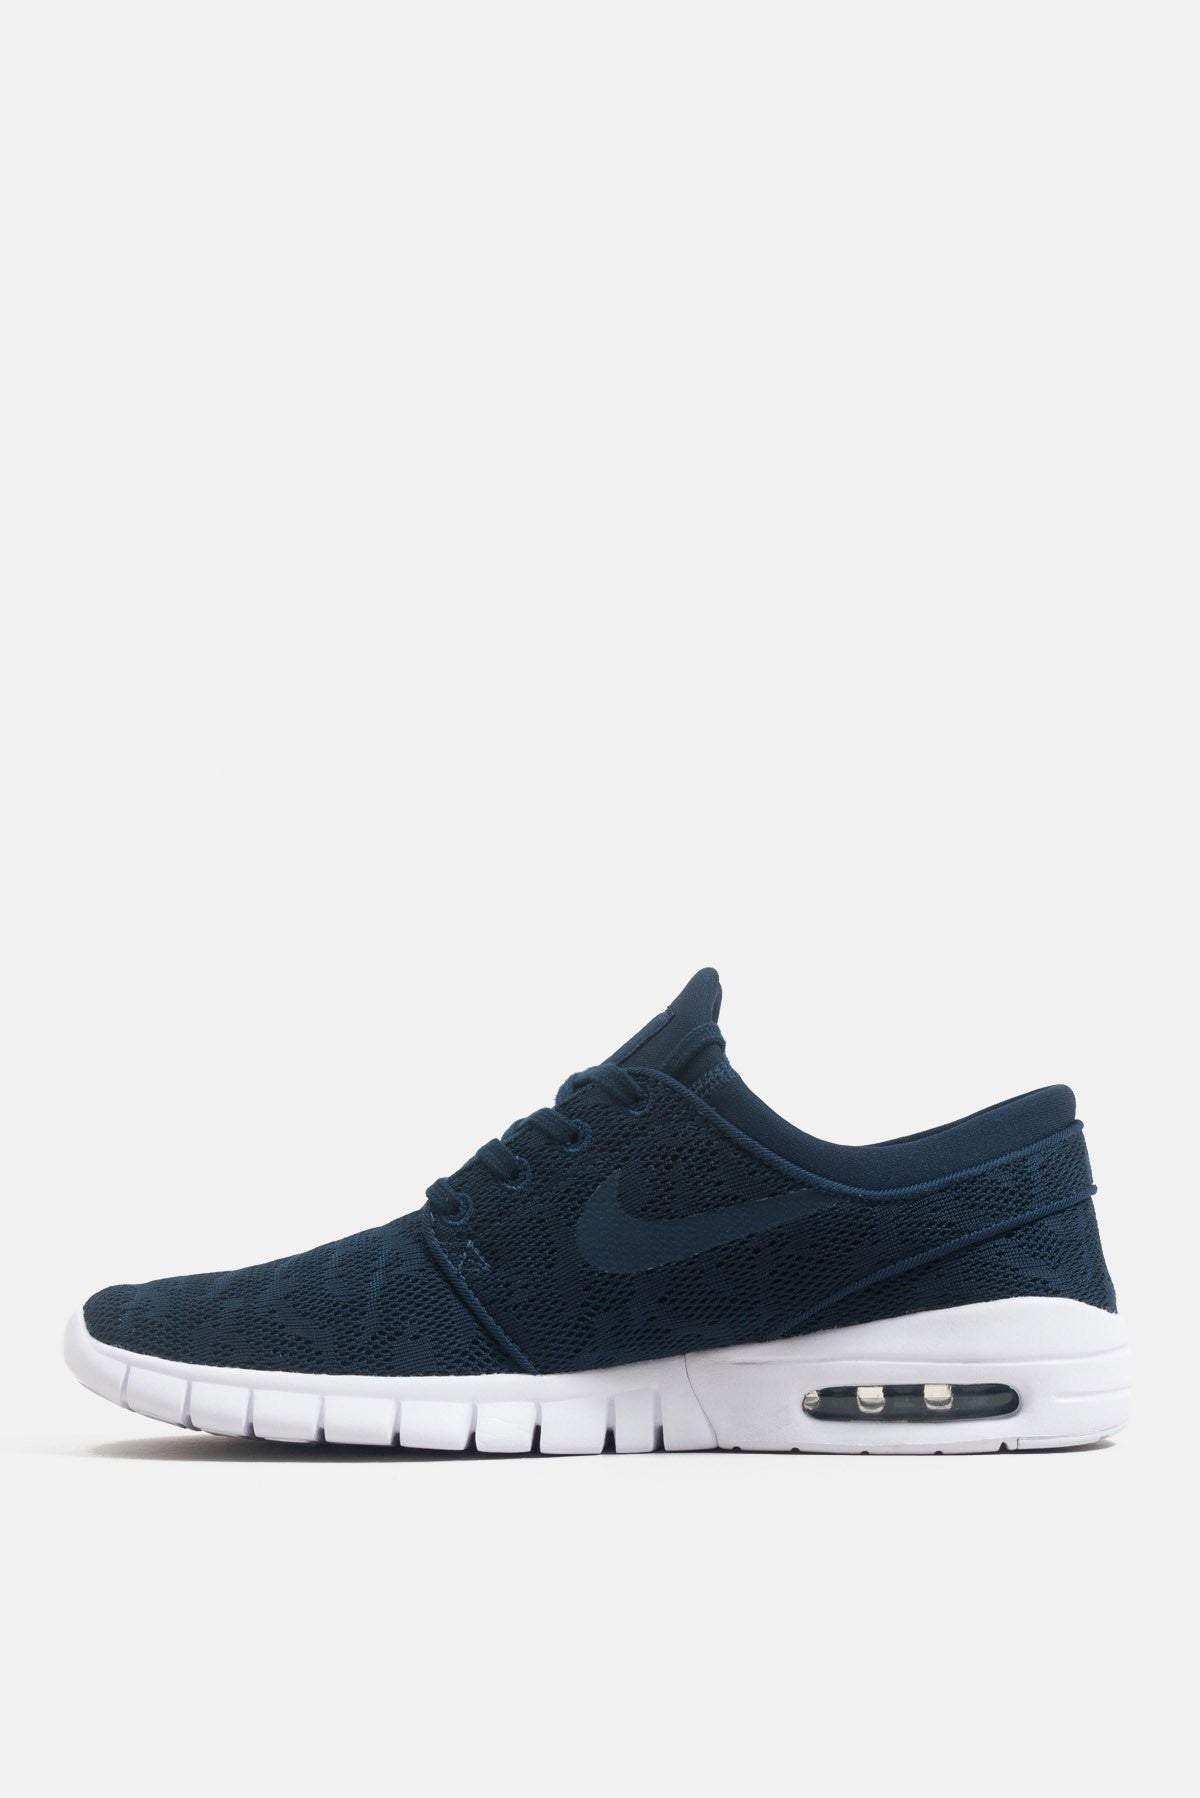 8f3279d33ac Nike SB Stefan Janoski Max Shoes available from Priory